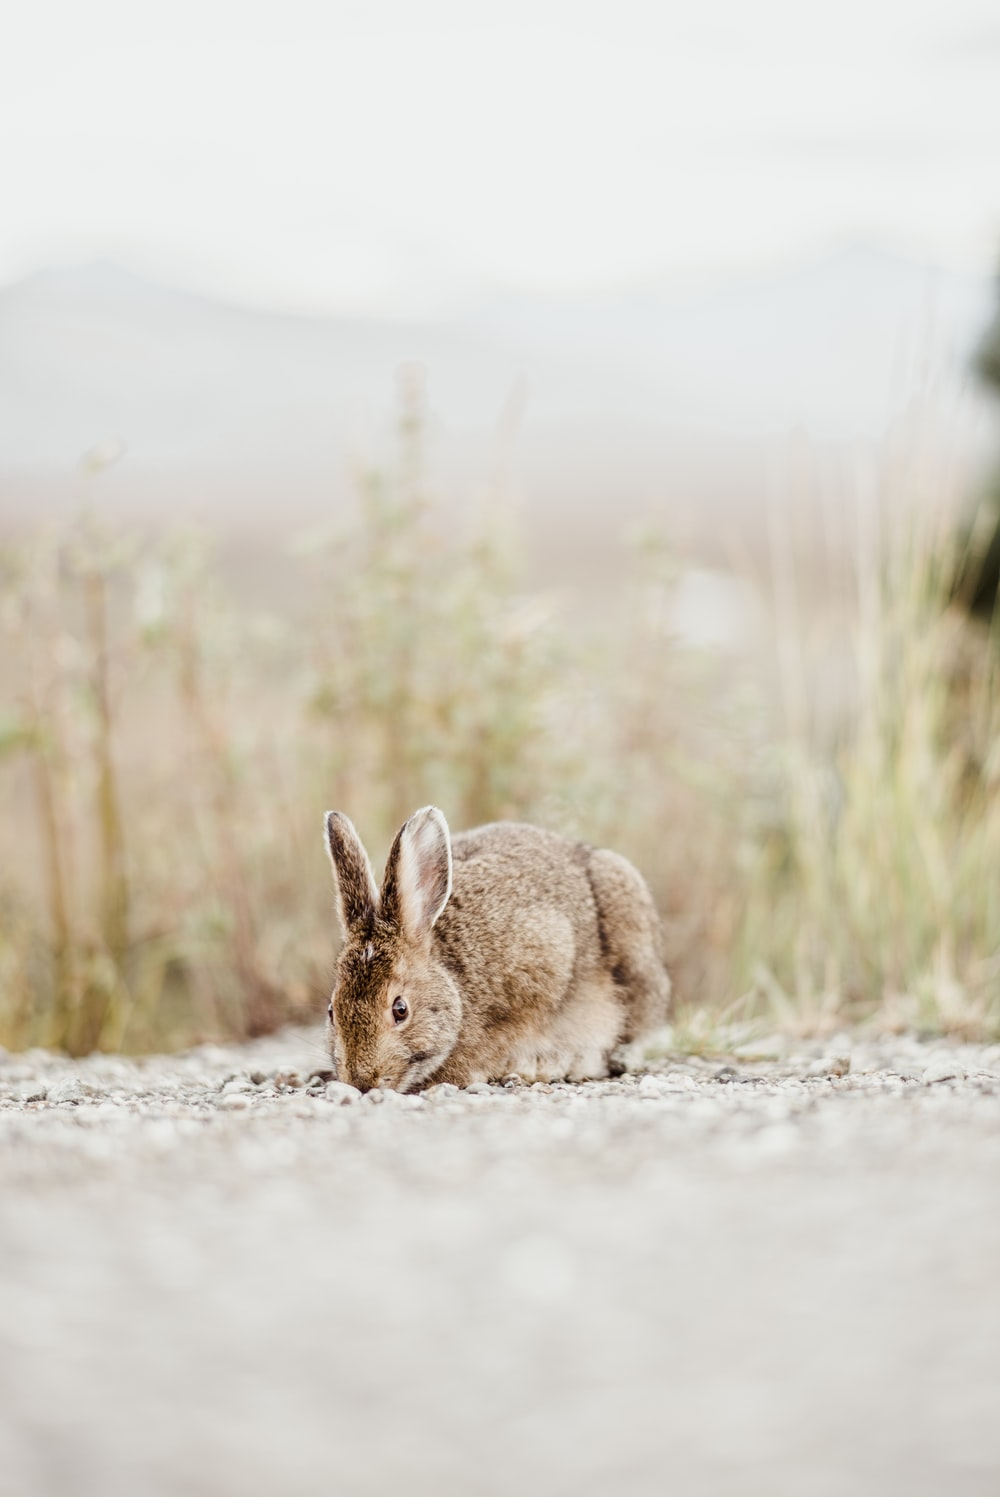 brown rabbit near grass during daytime